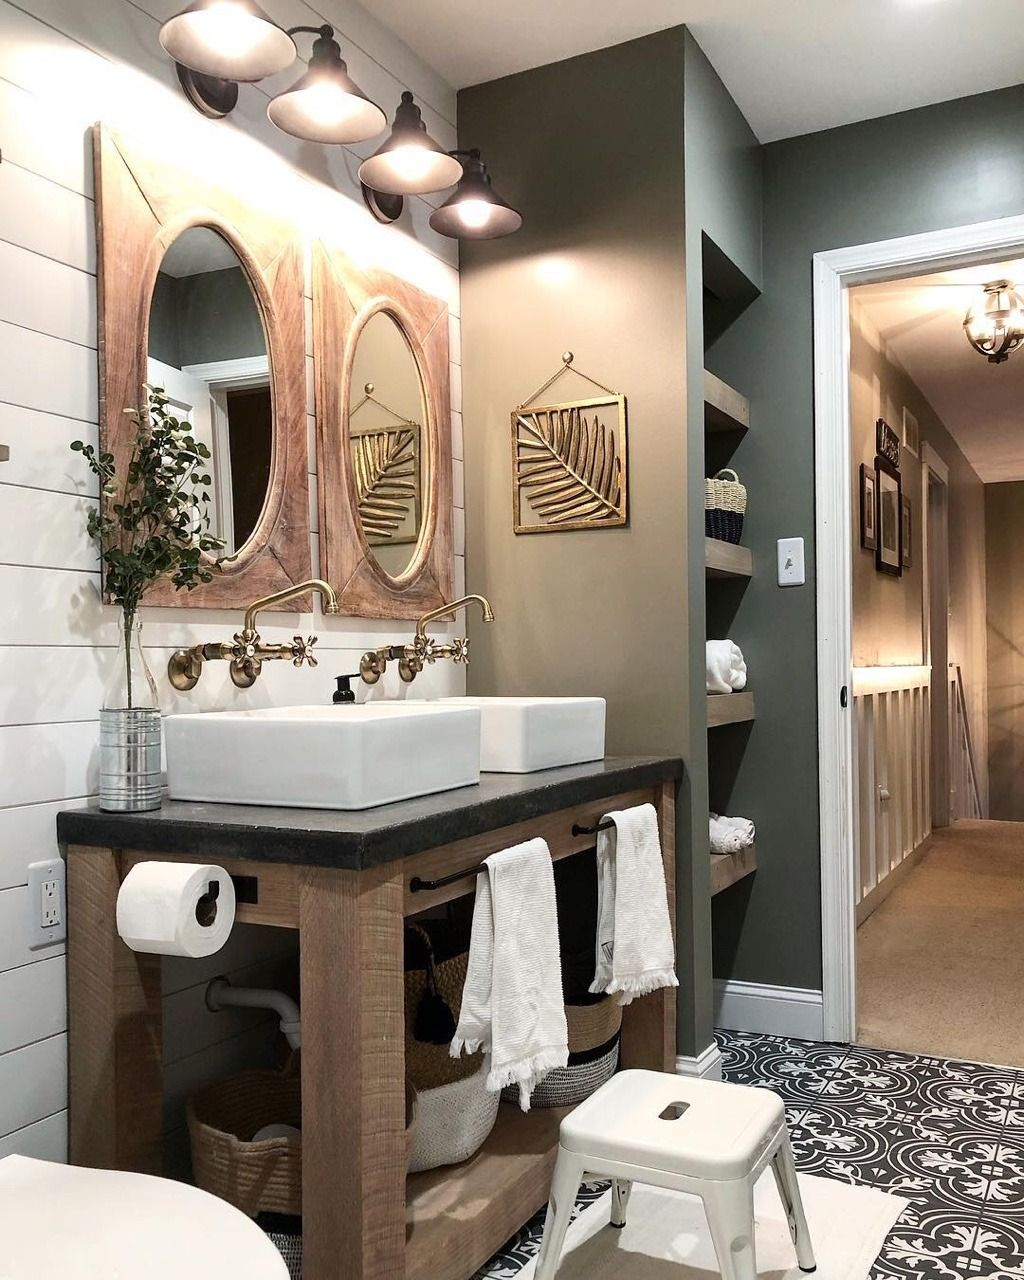 Home decor outlets interior design in basement pinterest bathroom inspiration and also rh